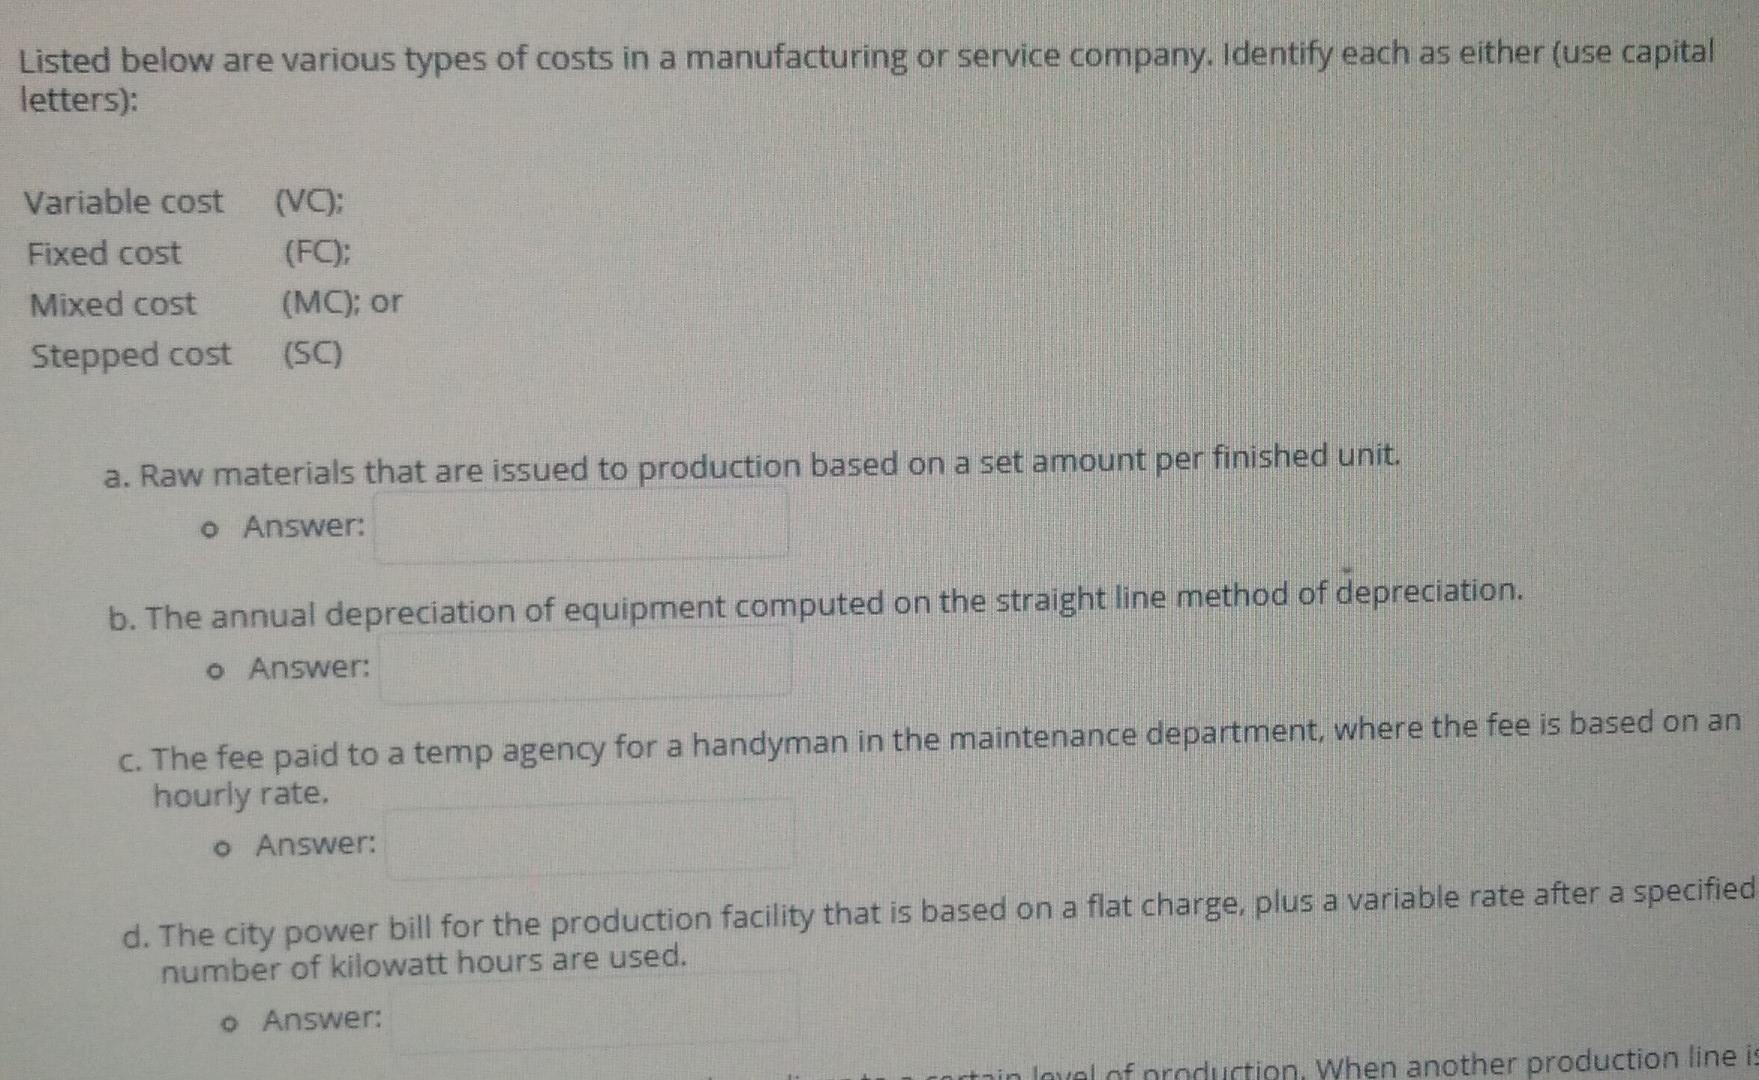 Listed below are various types of costs in a manufacturing or service company. Identify each as either (use capital letters):